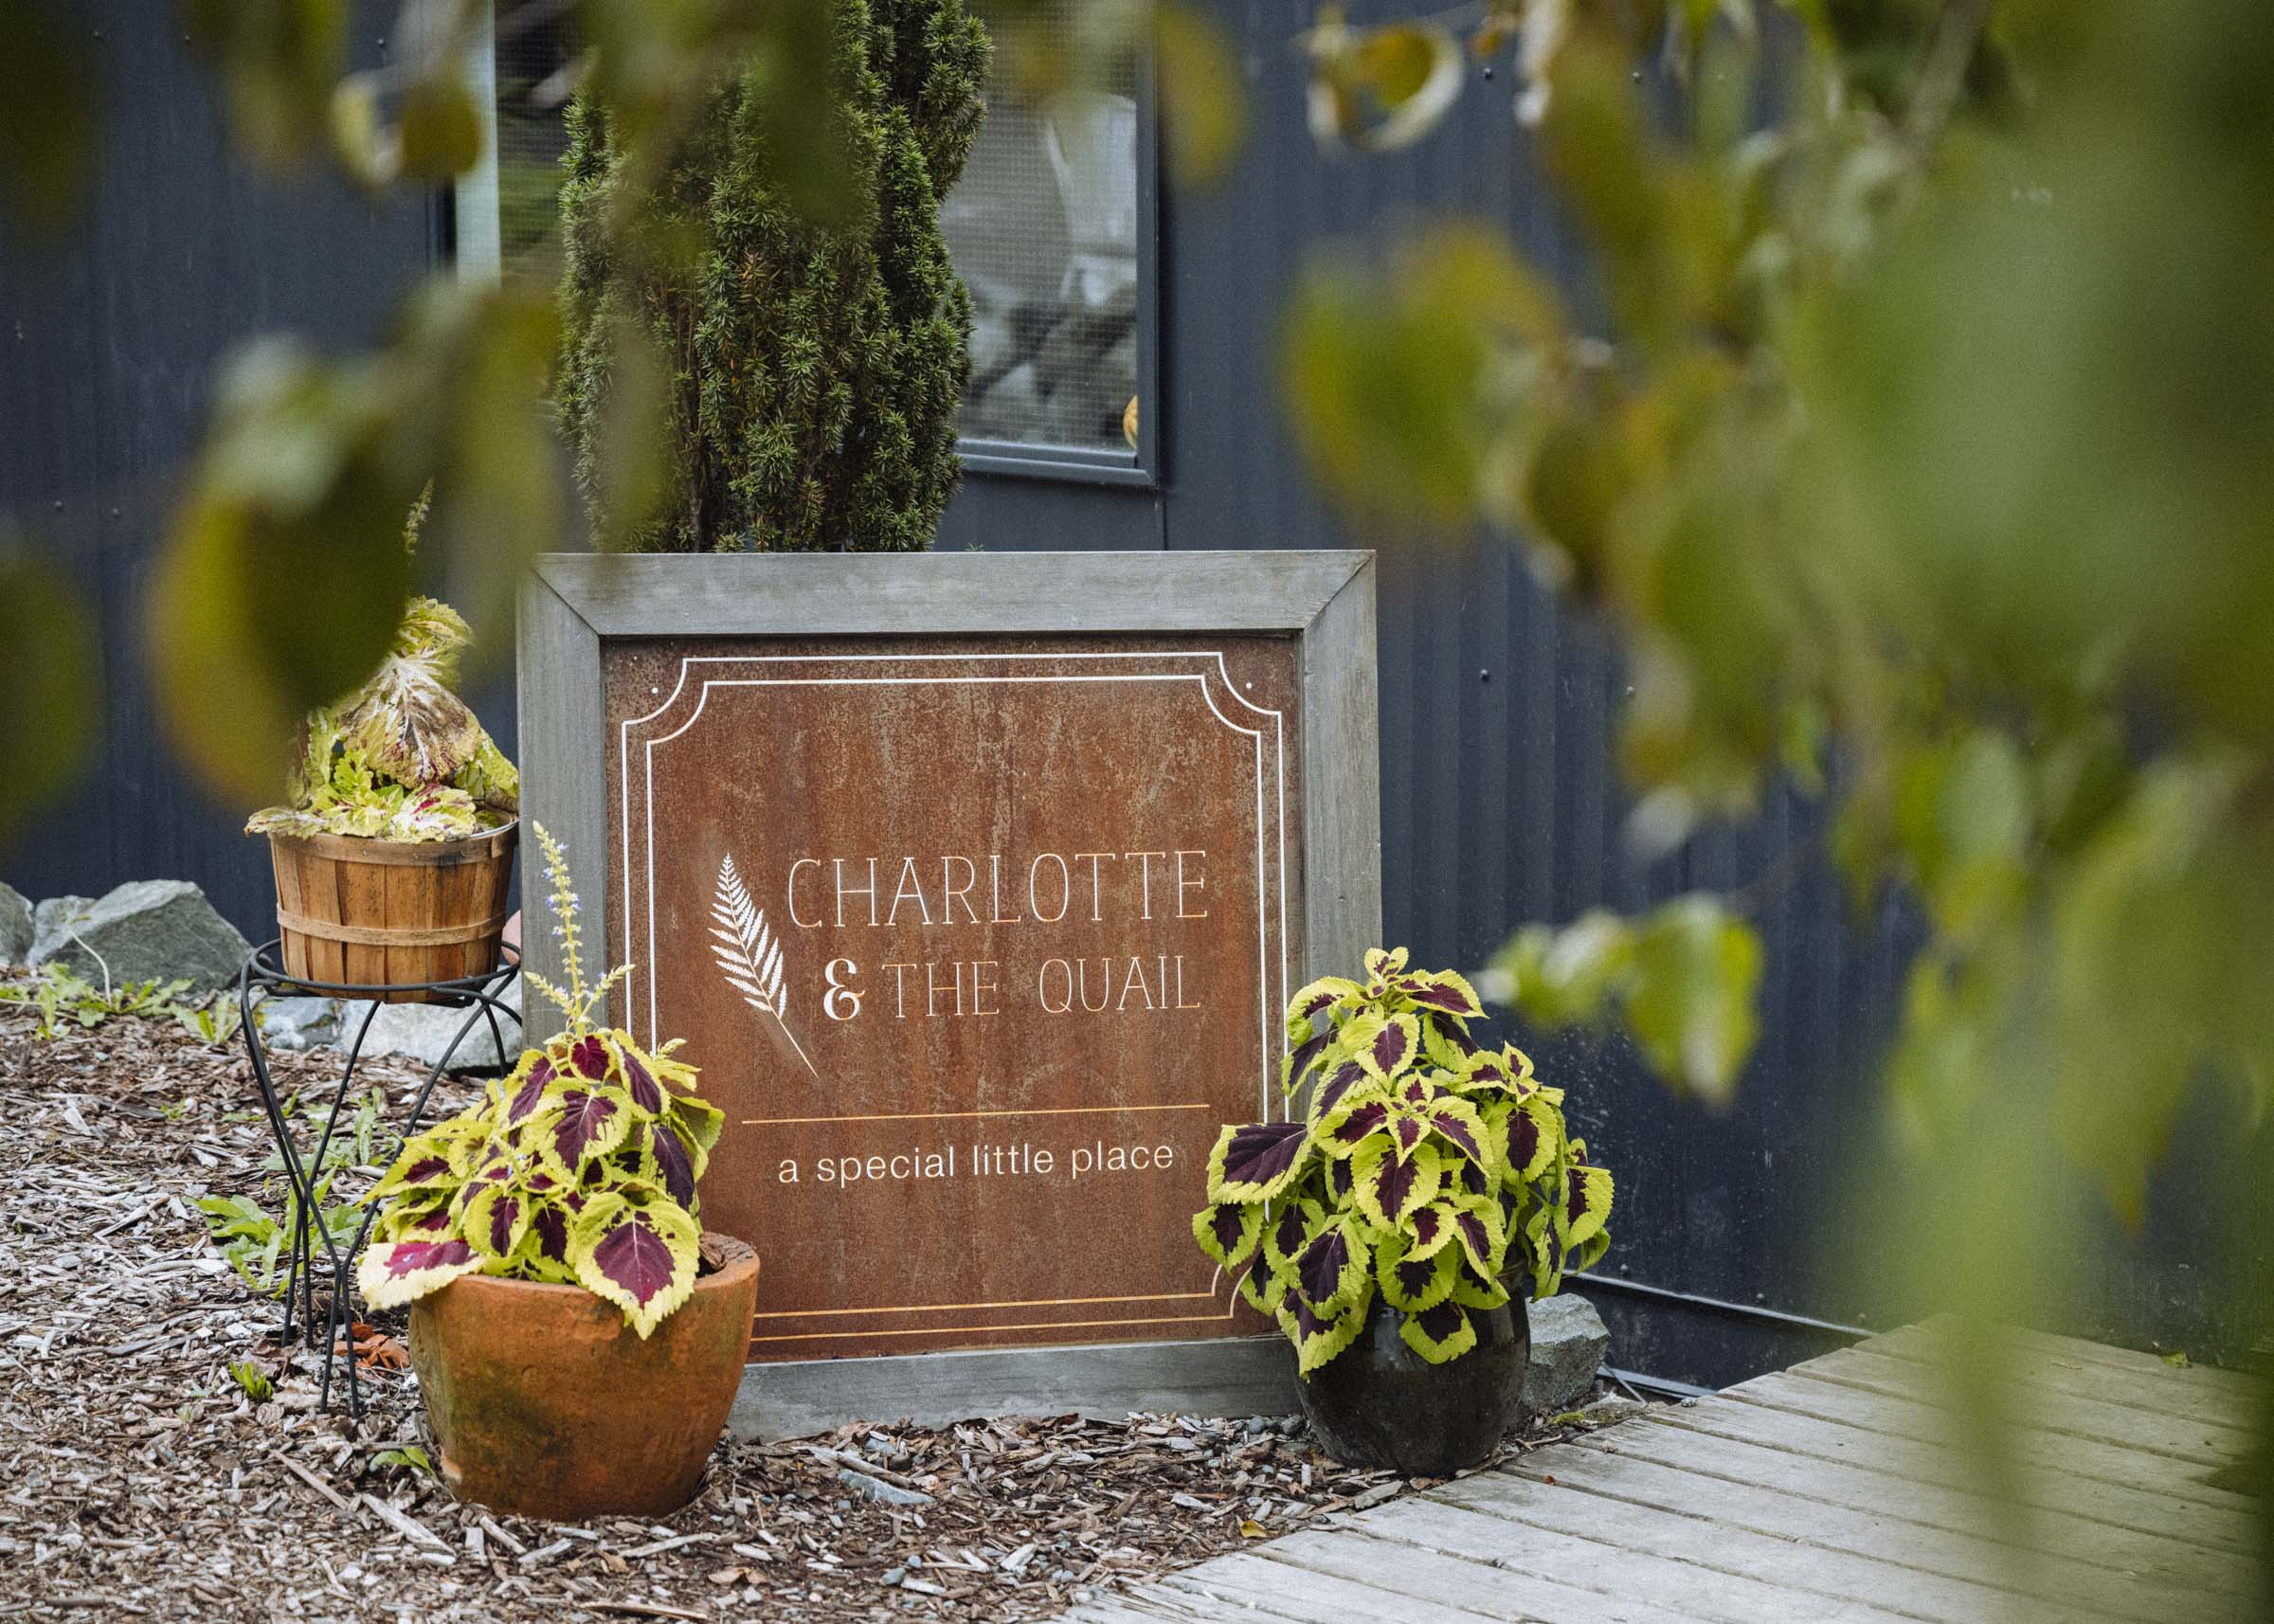 The entrance to Charlotte & the Quail, a cozy little restaurant cafe north of Victoria, BC